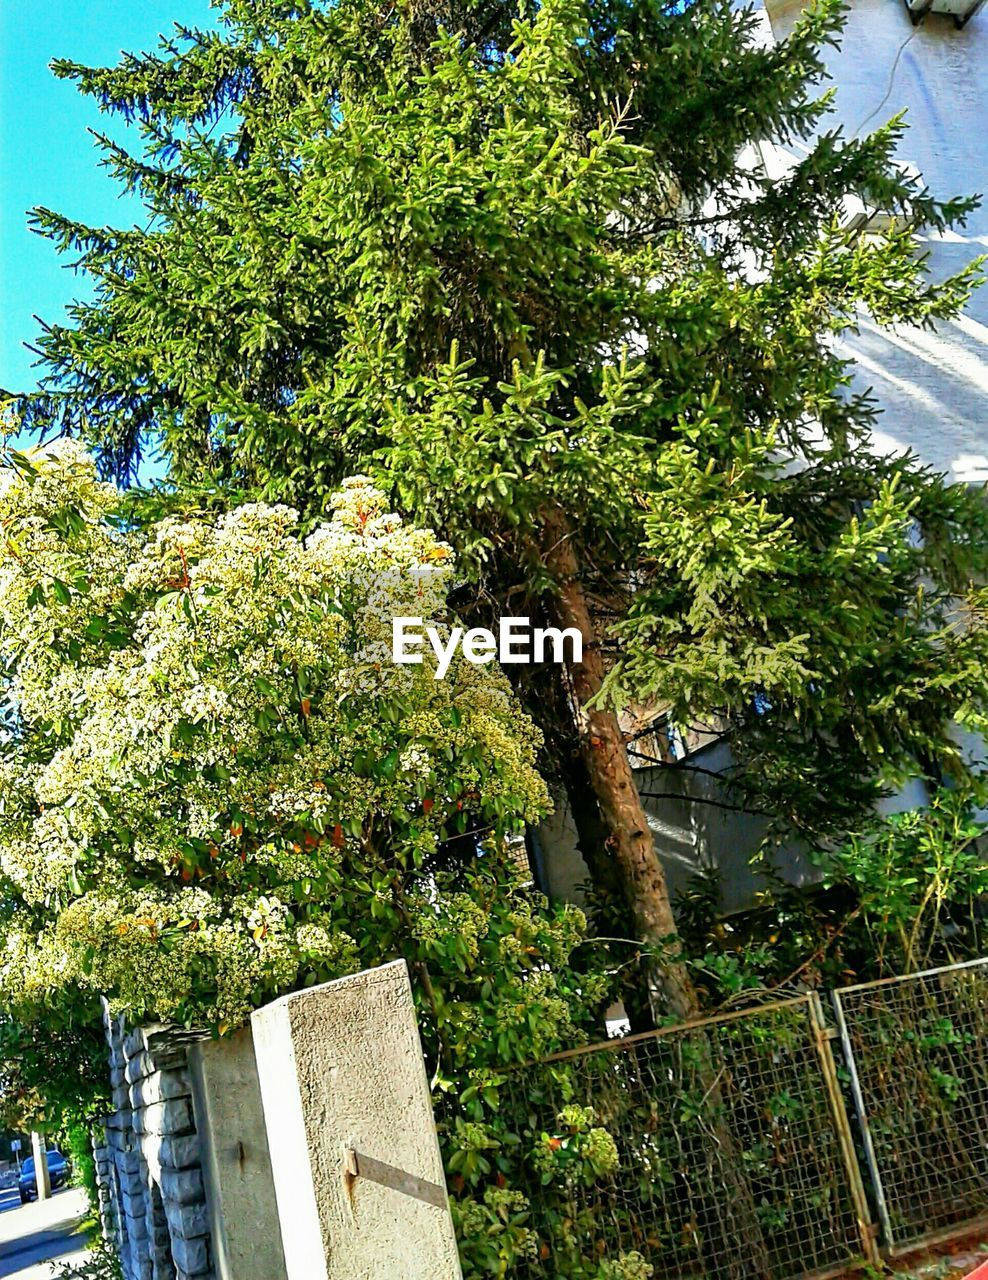 plant, tree, built structure, growth, architecture, nature, building exterior, day, green color, outdoors, sunlight, no people, sky, building, beauty in nature, city, boundary, fence, flowering plant, barrier